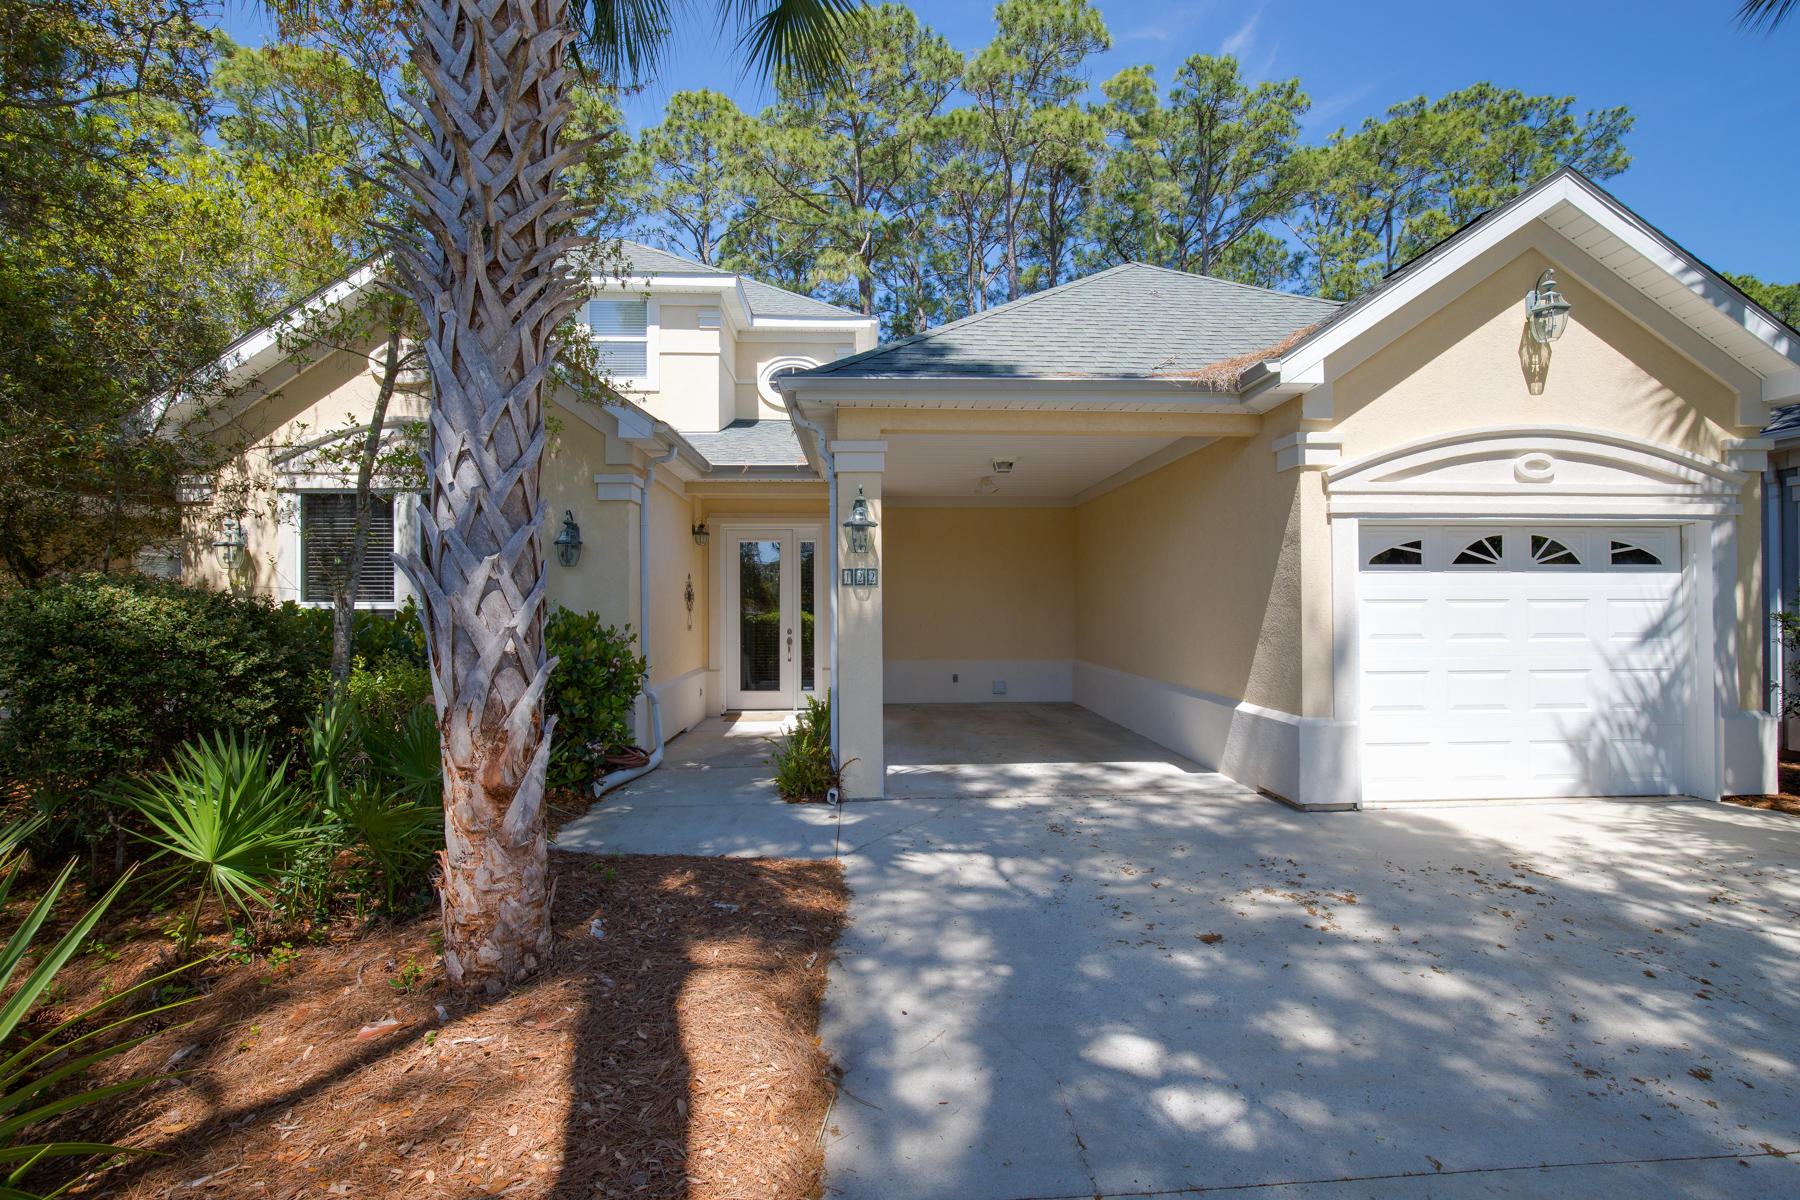 Photo of home for sale at 122 Masters, Santa Rosa Beach FL